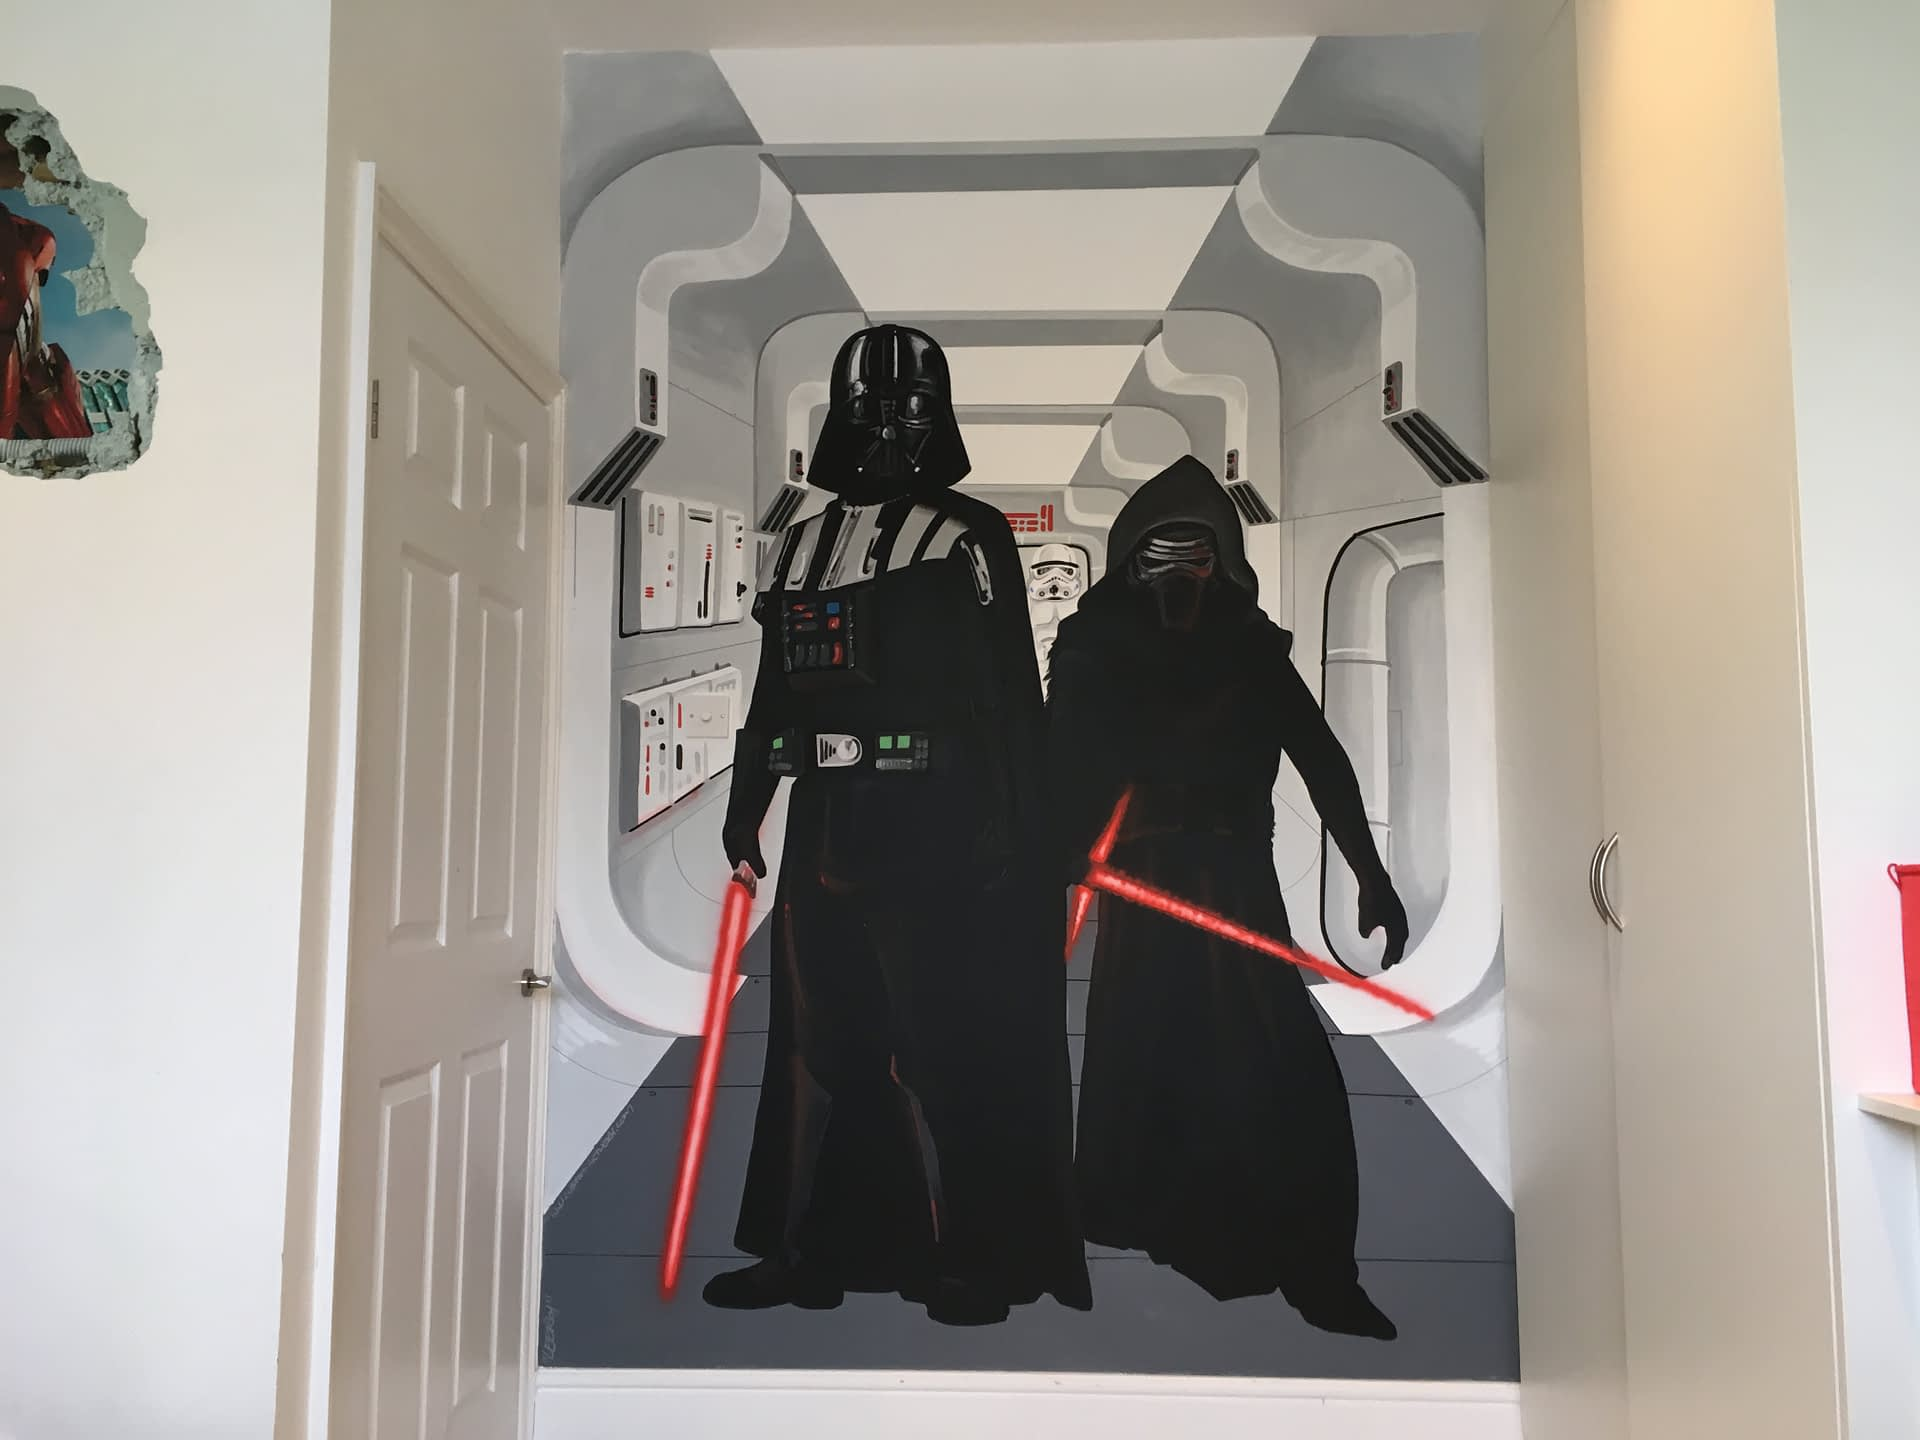 Darth Vader & Kylo Ren Star Wars Mural